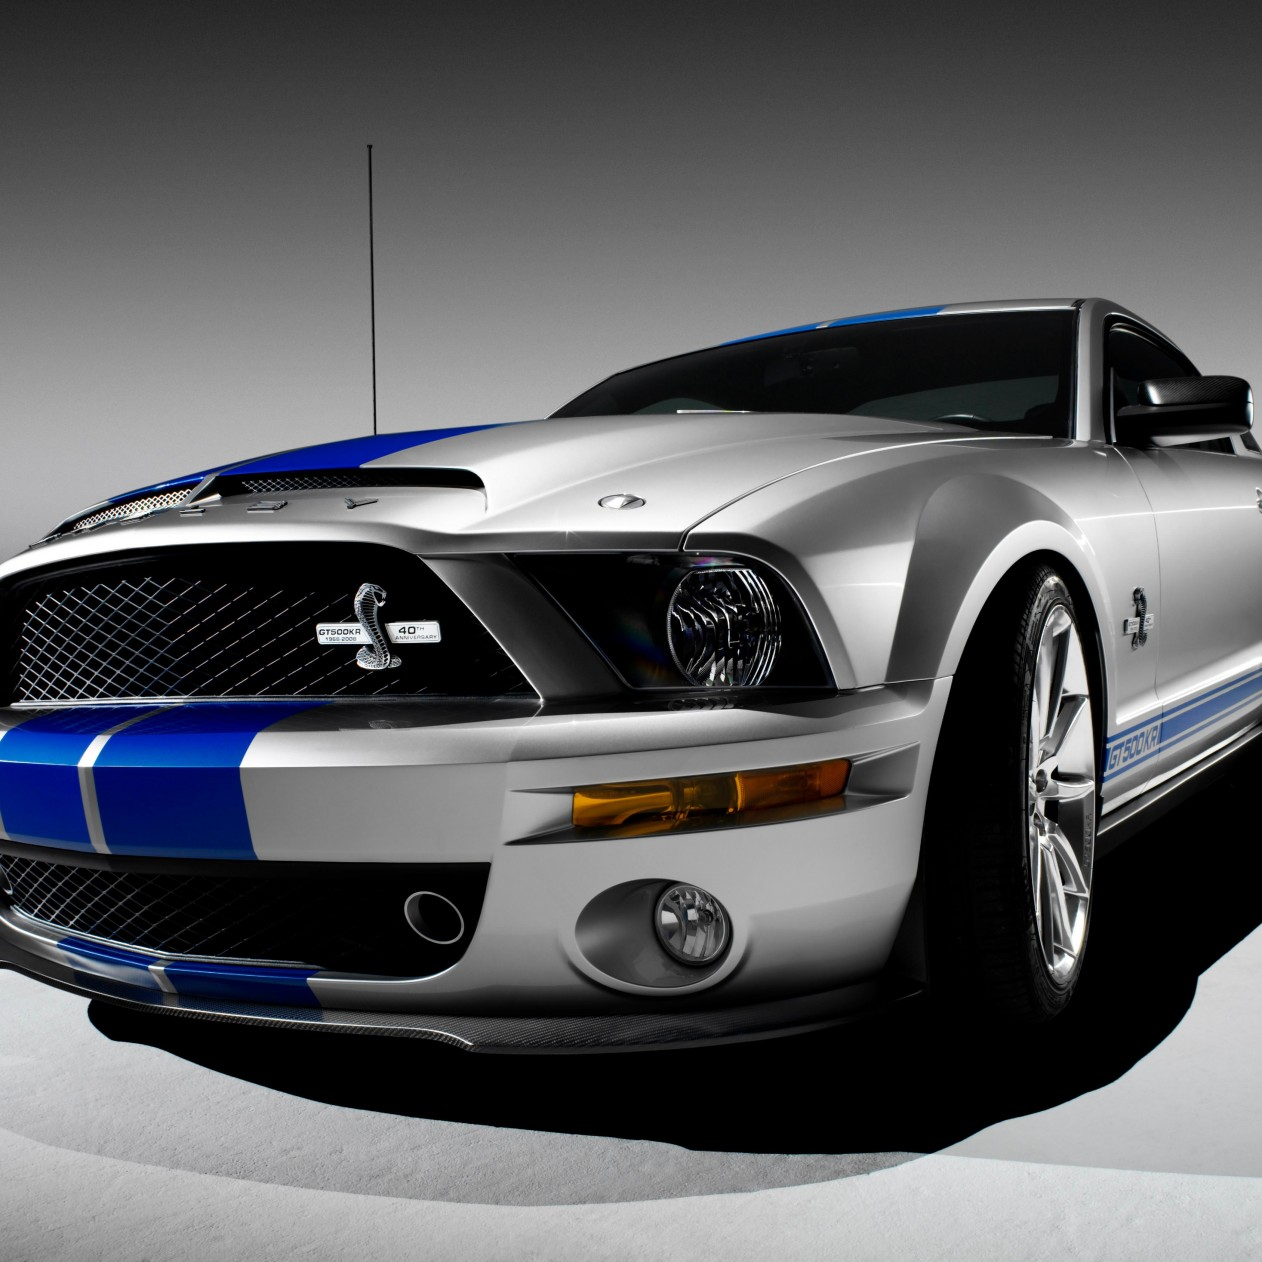 Shelby Mustang GT500KR Wallpaper for Apple iPad mini